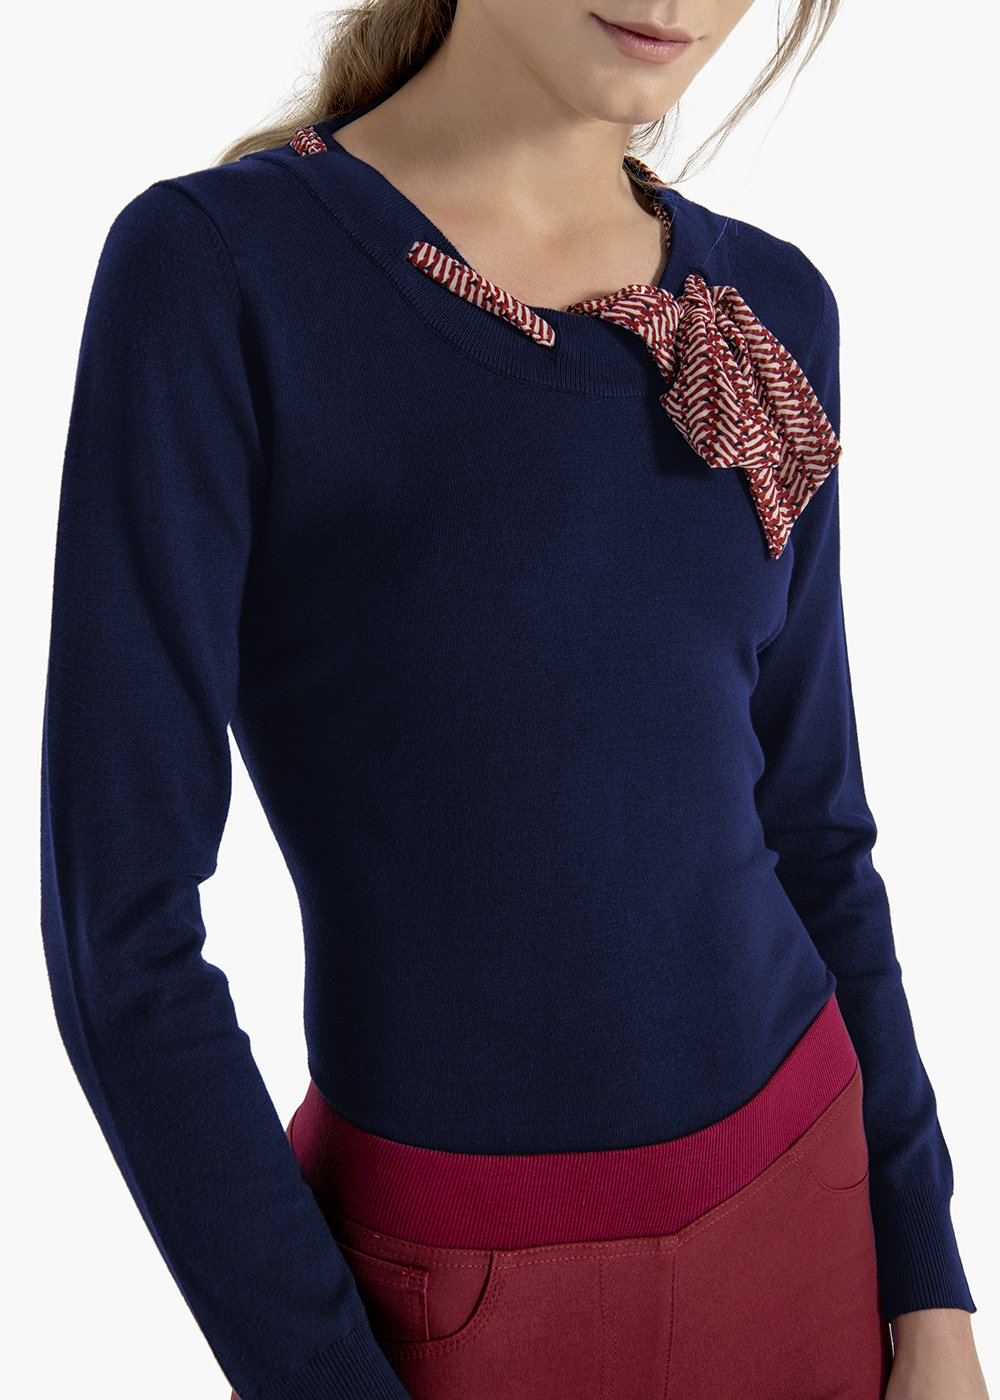 T-shirt Morena in viscose with scarf in georgette - Medium Blue - Woman